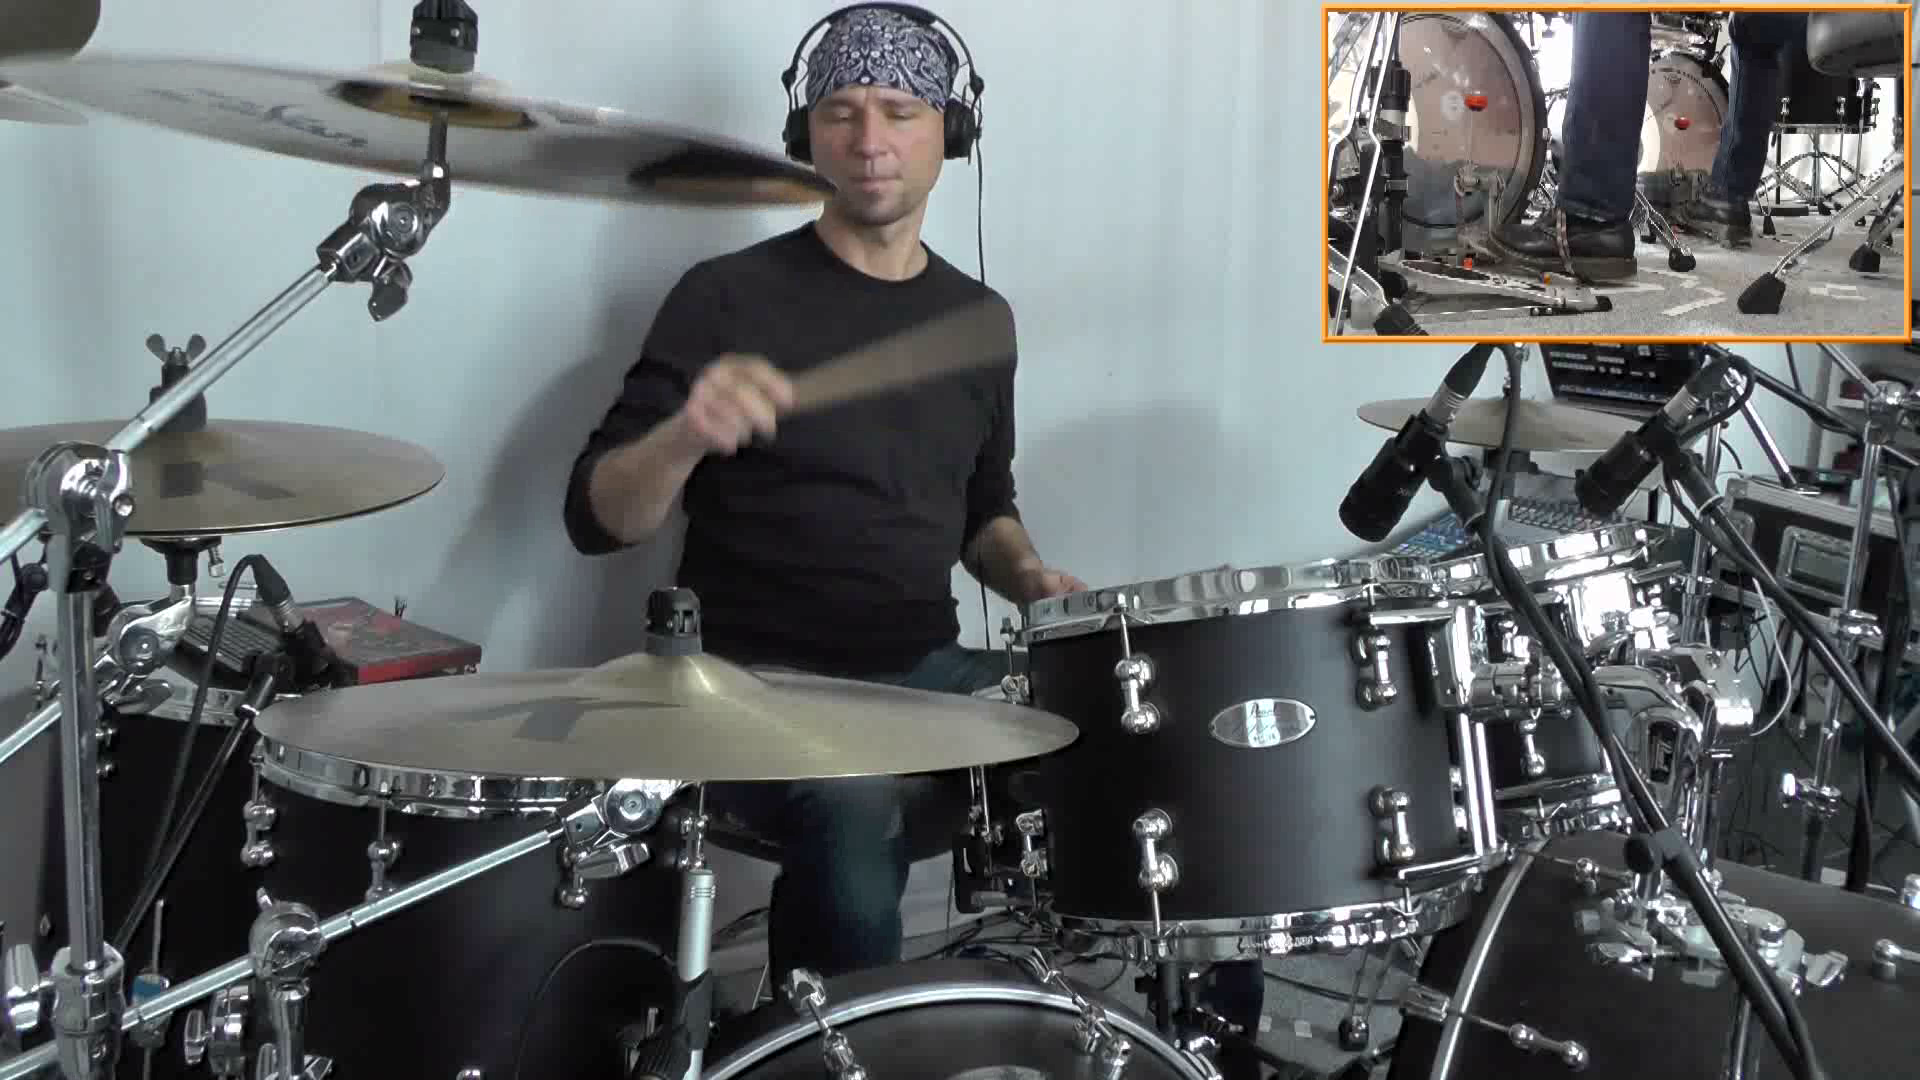 Third Dark Secret of Double Bass Drumming